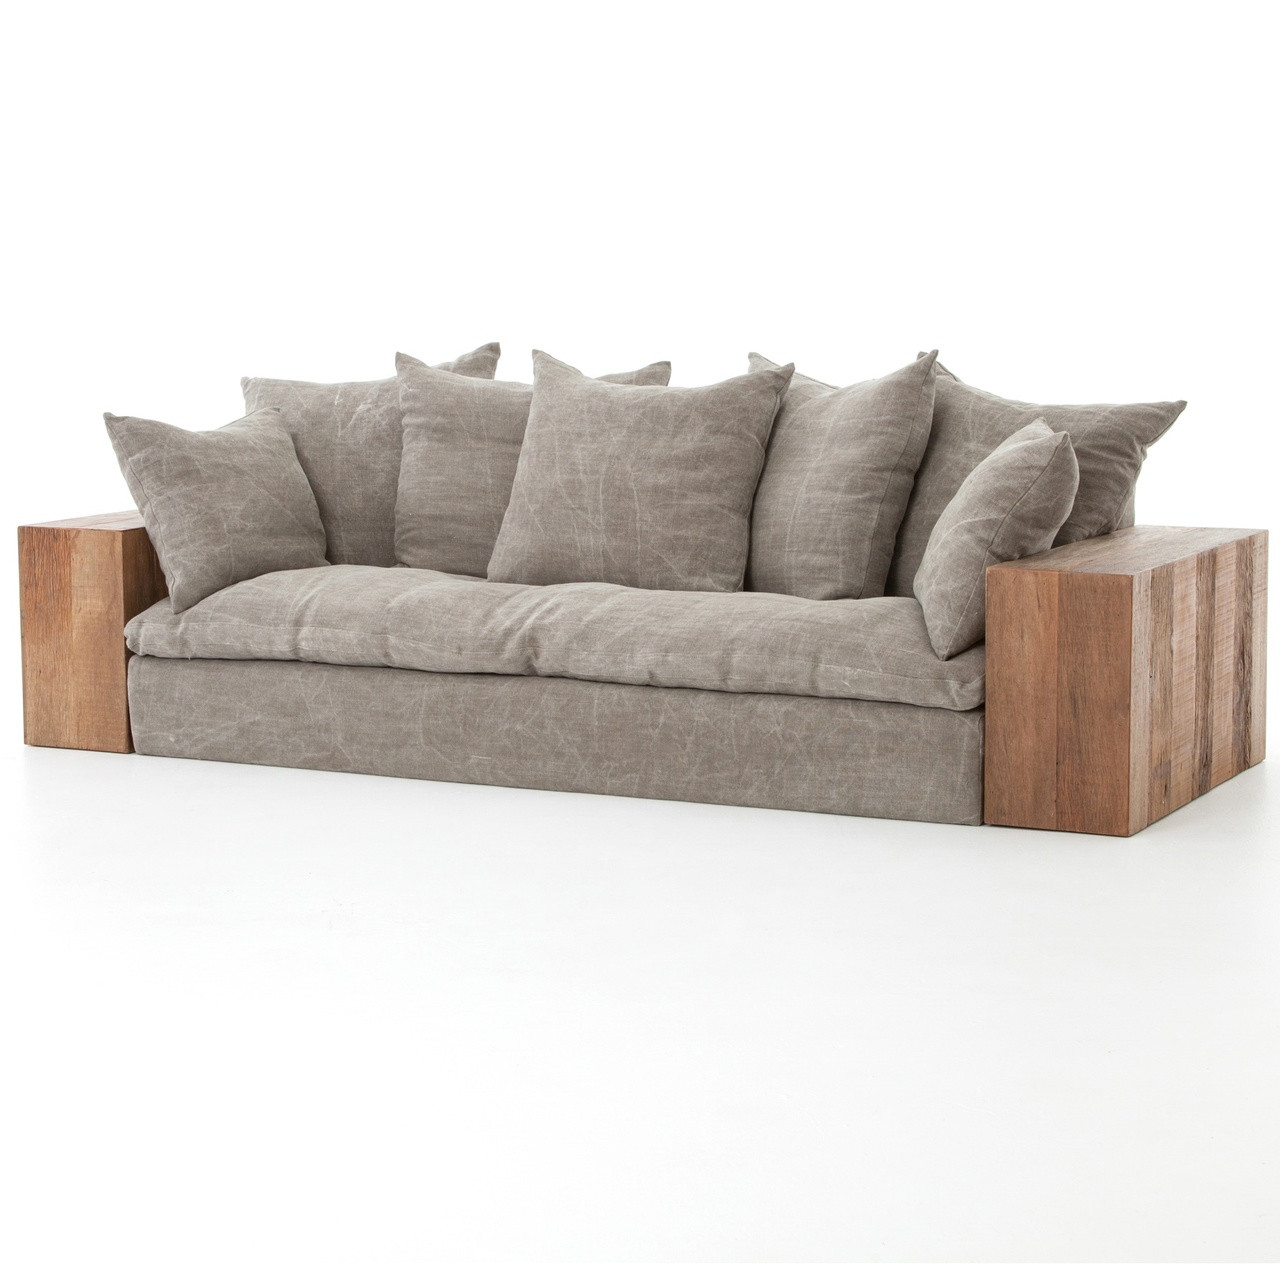 Industrial furniture sofa - Dorset Industrial Loft Taupe Jute Sofa With Wood Arms